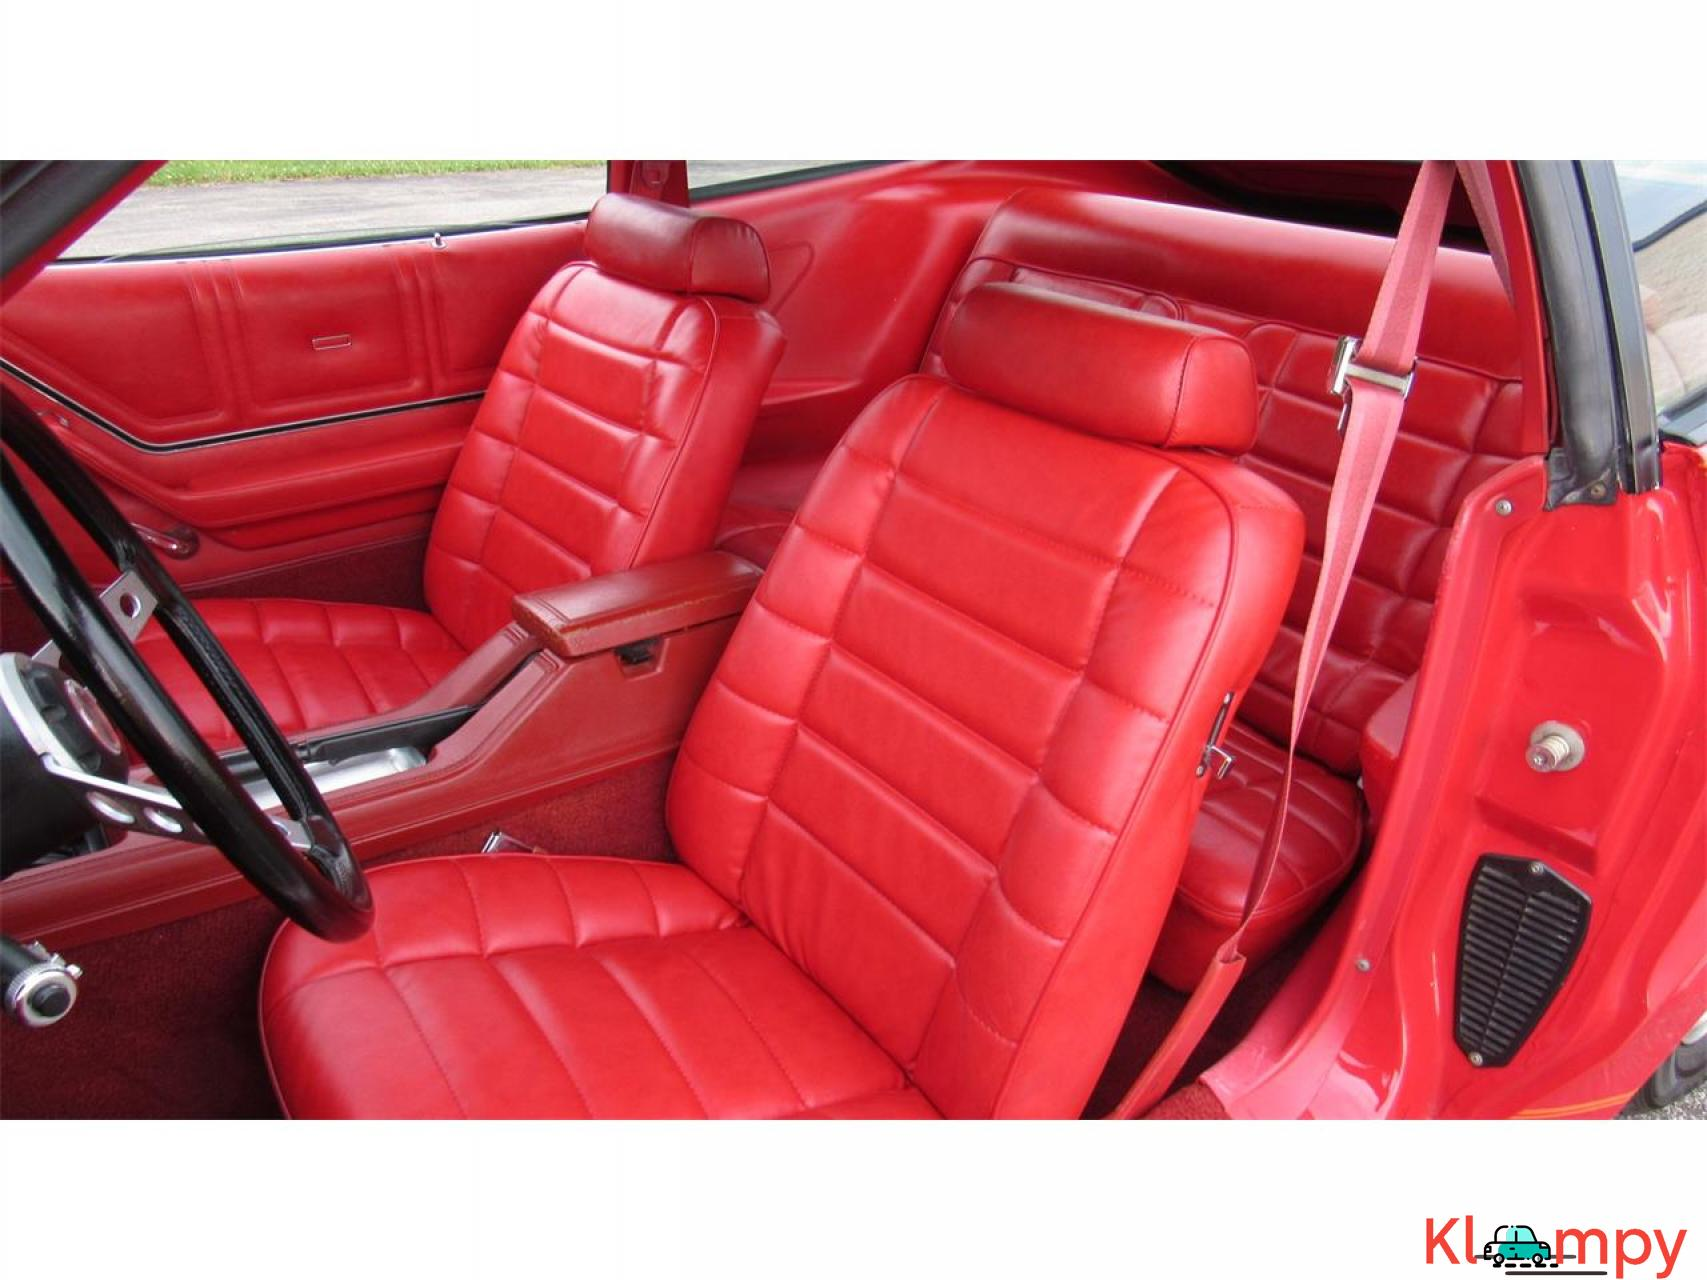 1978 Ford Mustang 302ci V8 Red - 16/17